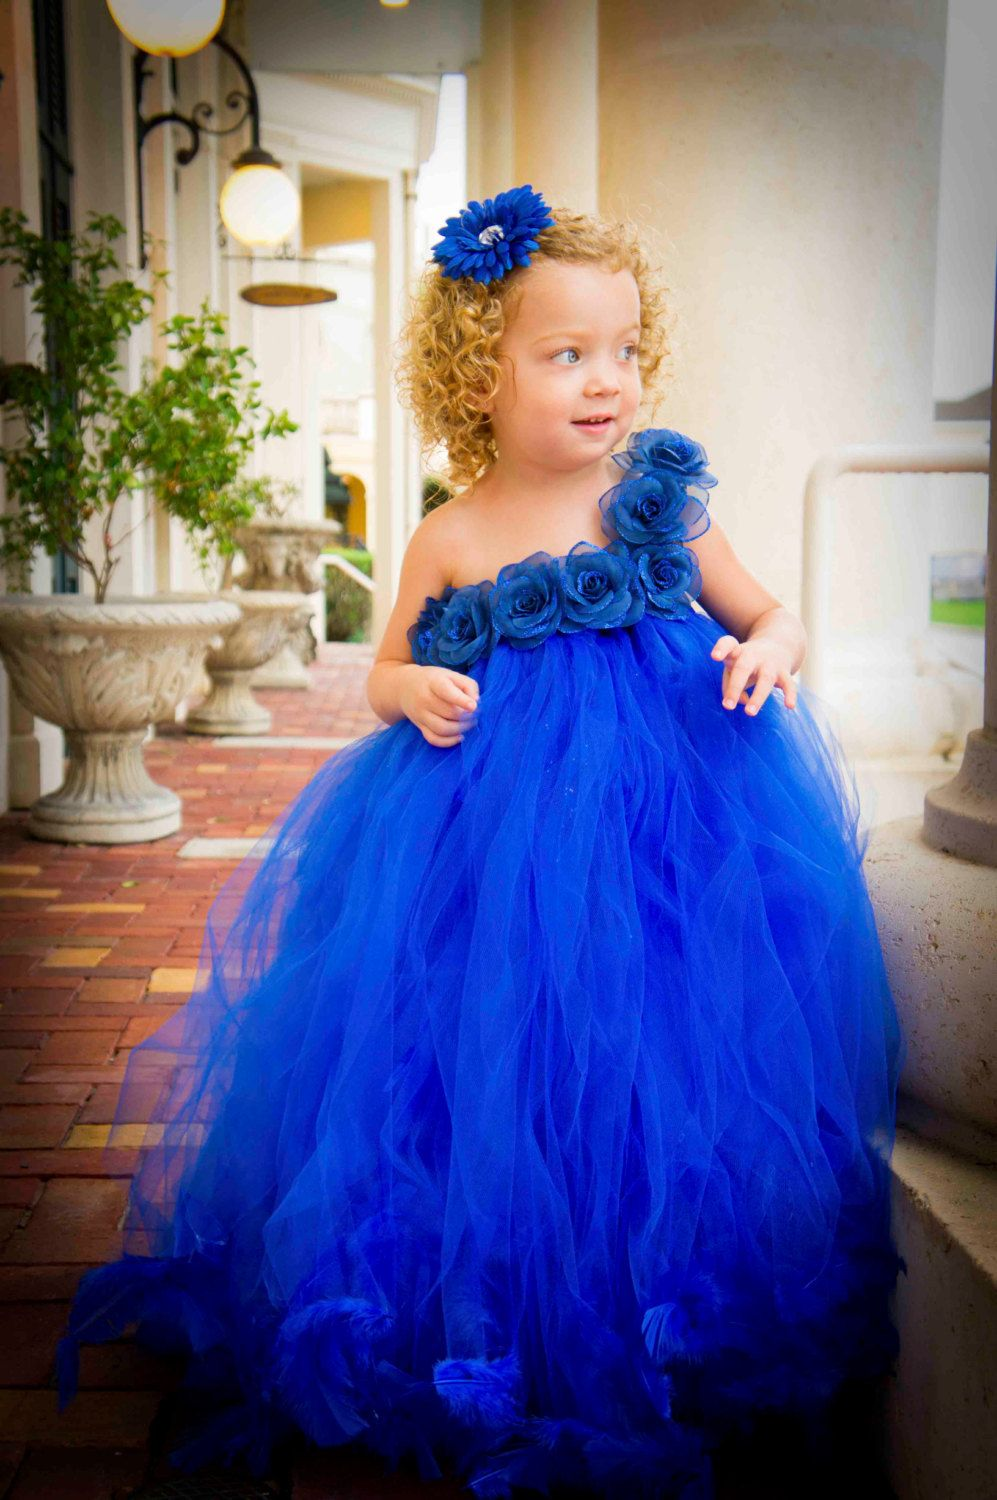 My Baby Girl Modeling A Beautiful Flower Girl Tutu Dress